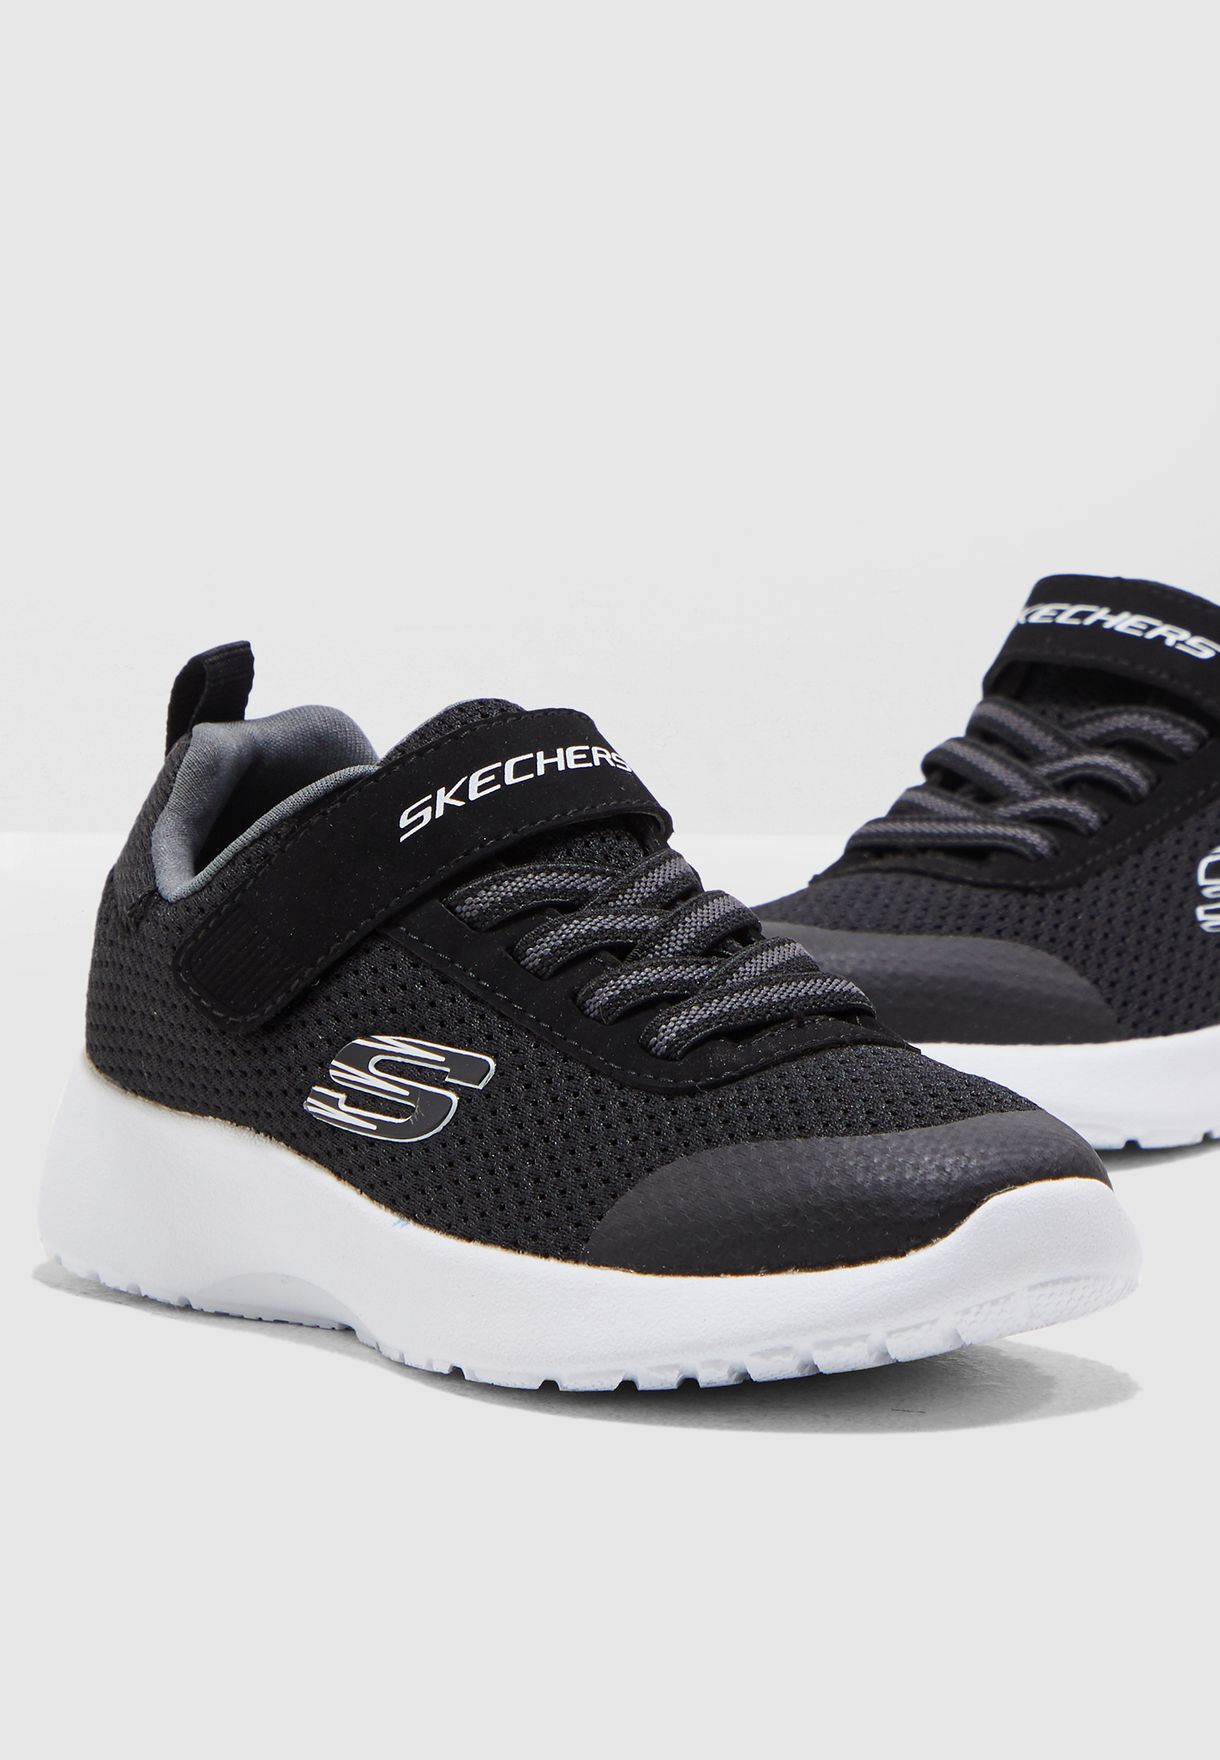 a8a97ce995c Shop Skechers black Kids Dynamight - Ultra Torque 97770L-BKW for ...